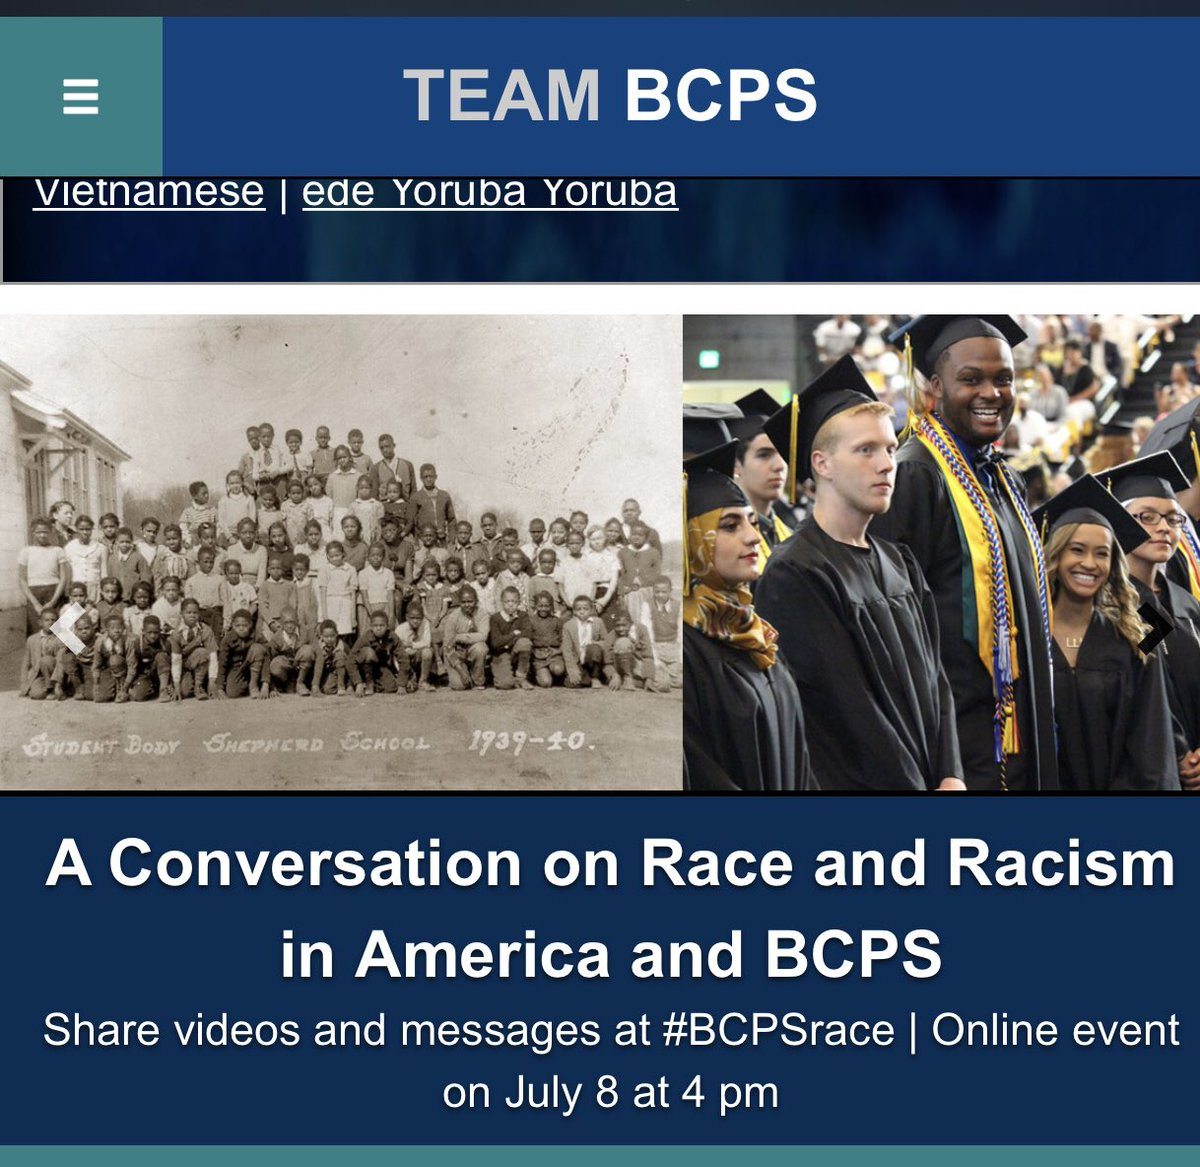 It's a great day for a conversation. Are you ready, Team BCPS? Let's do this!